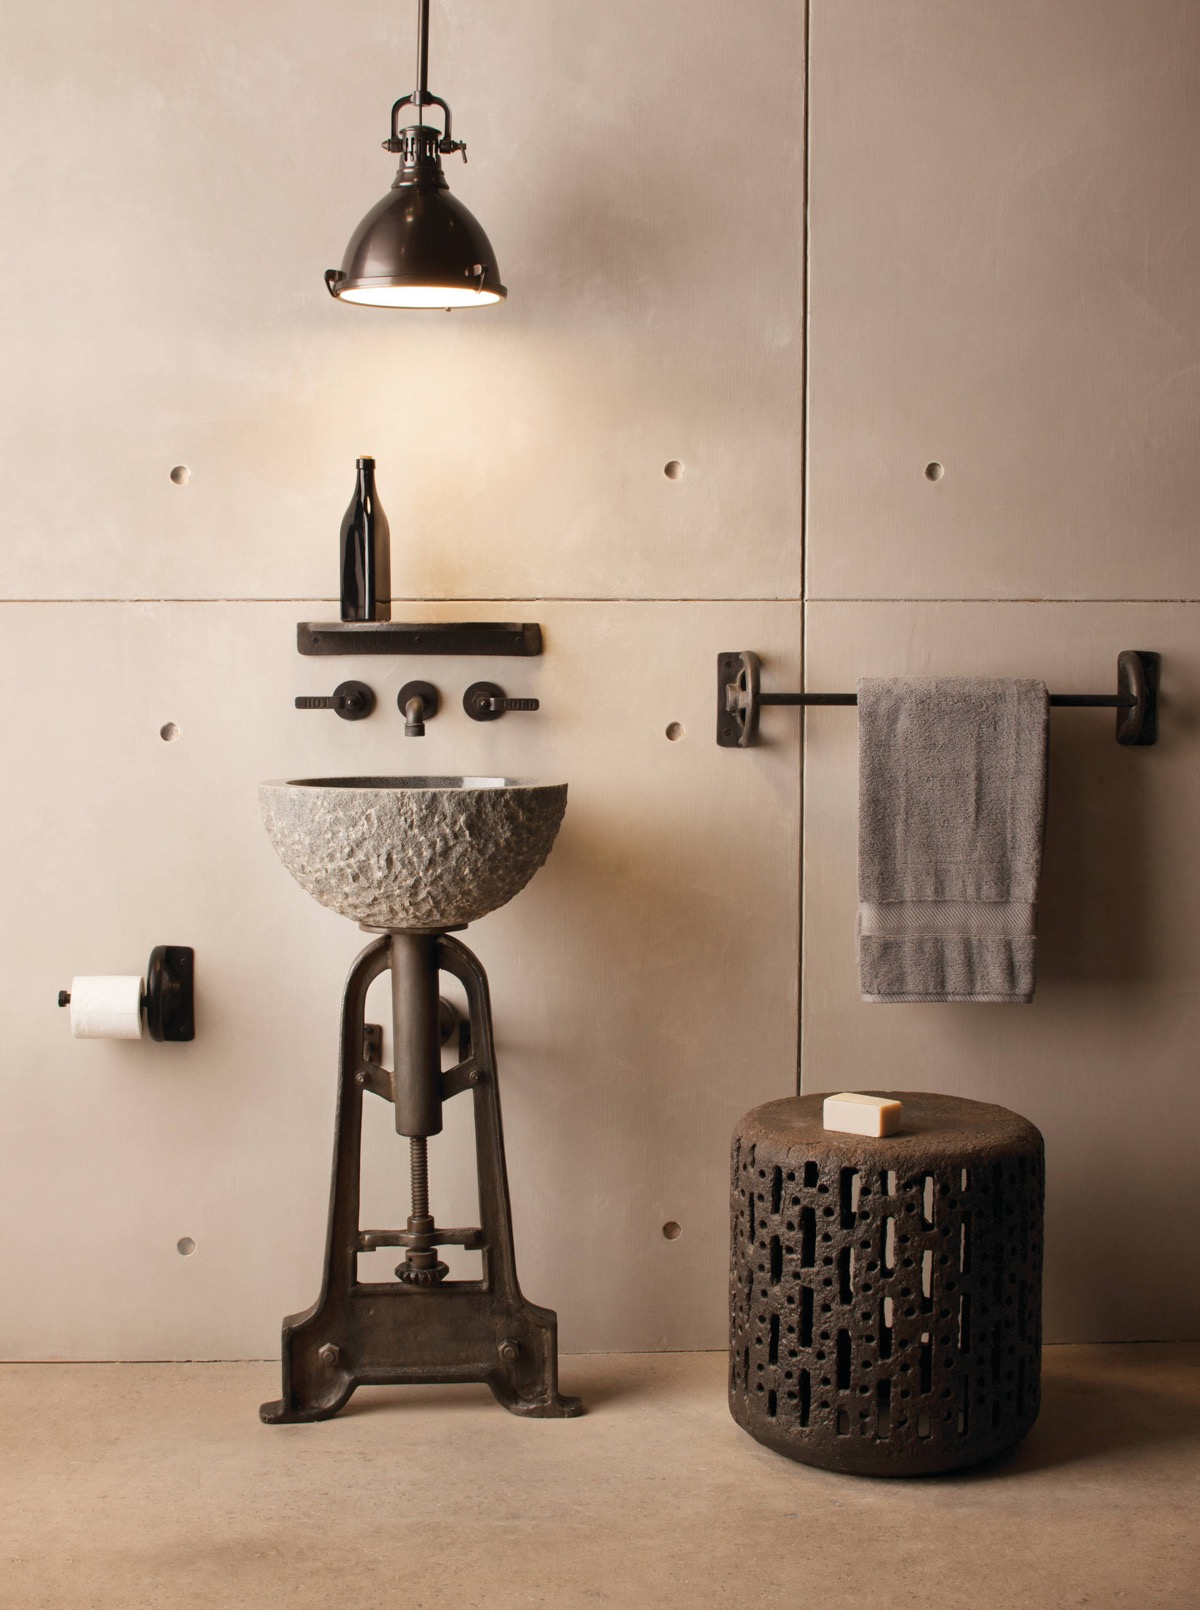 51 Industrial Style Bathrooms Plus Ideas & Accessories You Can Copy From Them images 7